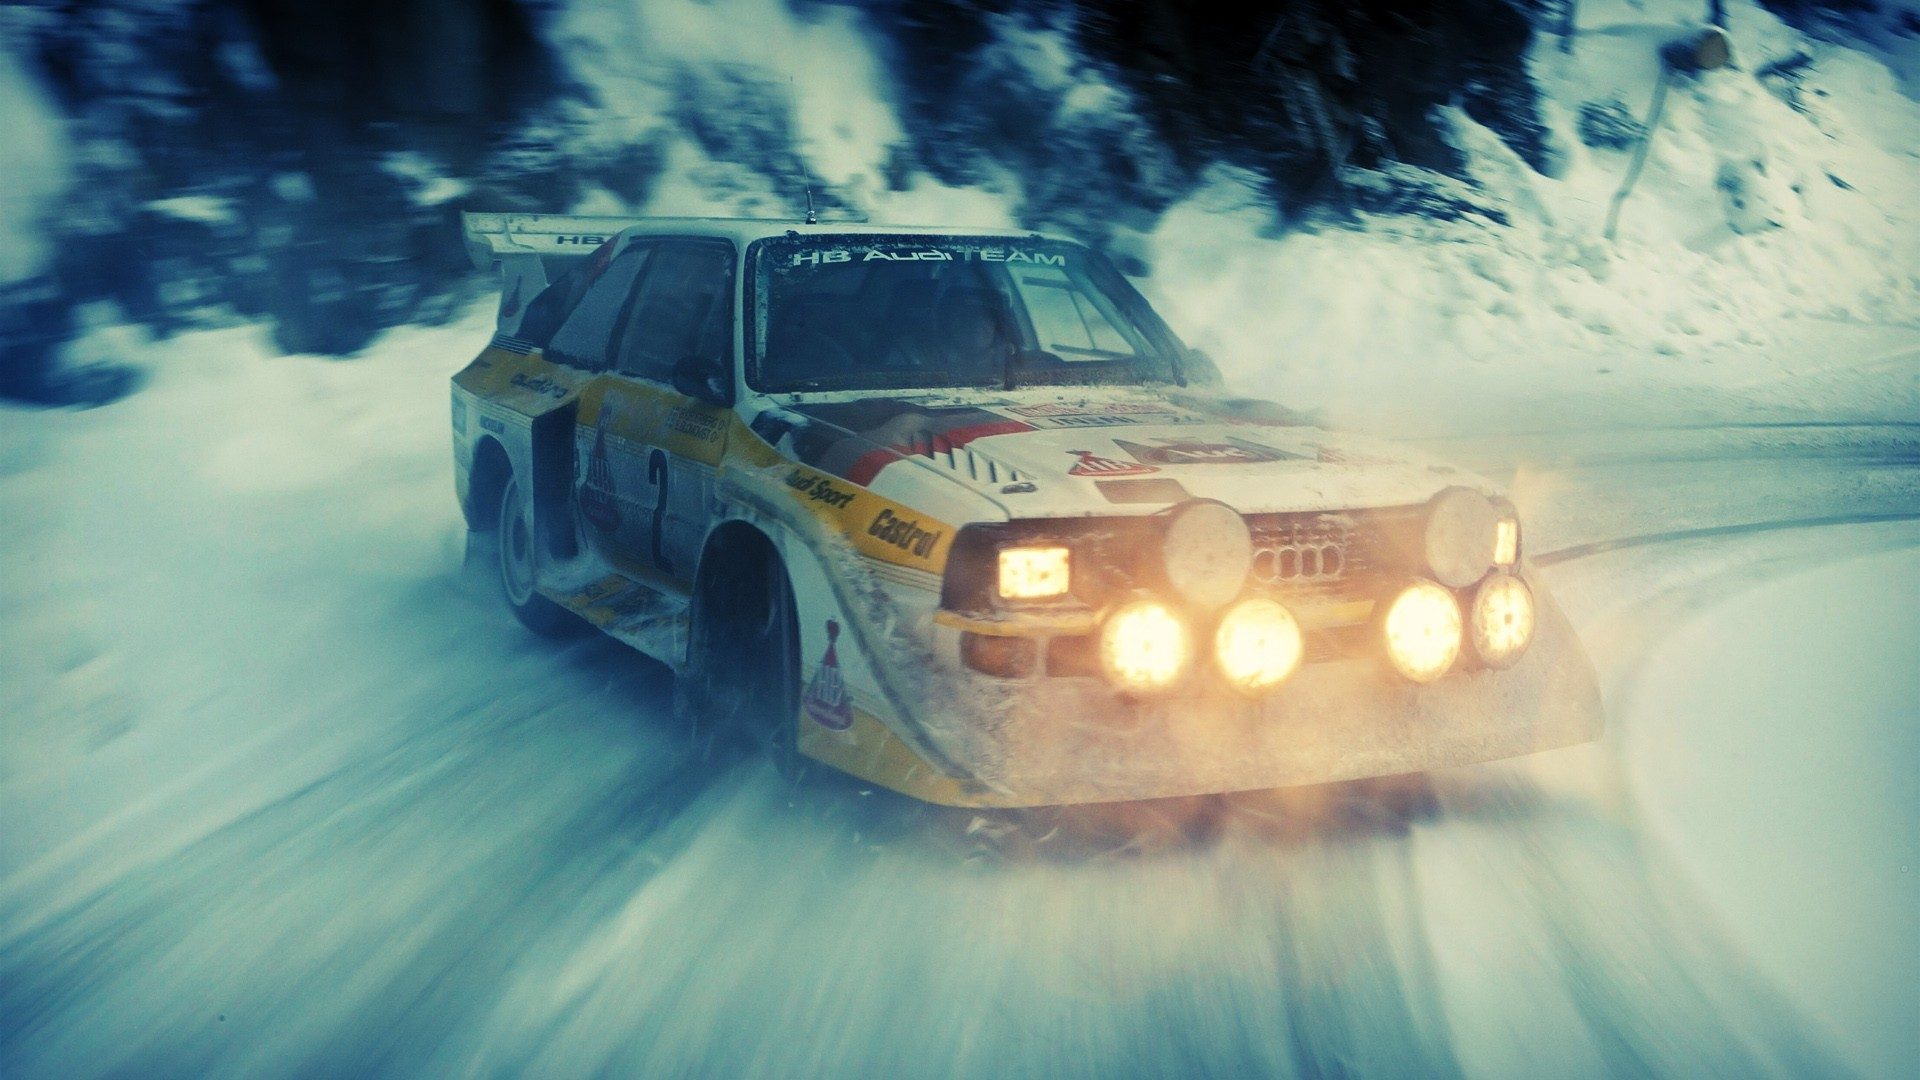 lights, old car, rally cars, snow, sports, audi quattro ...